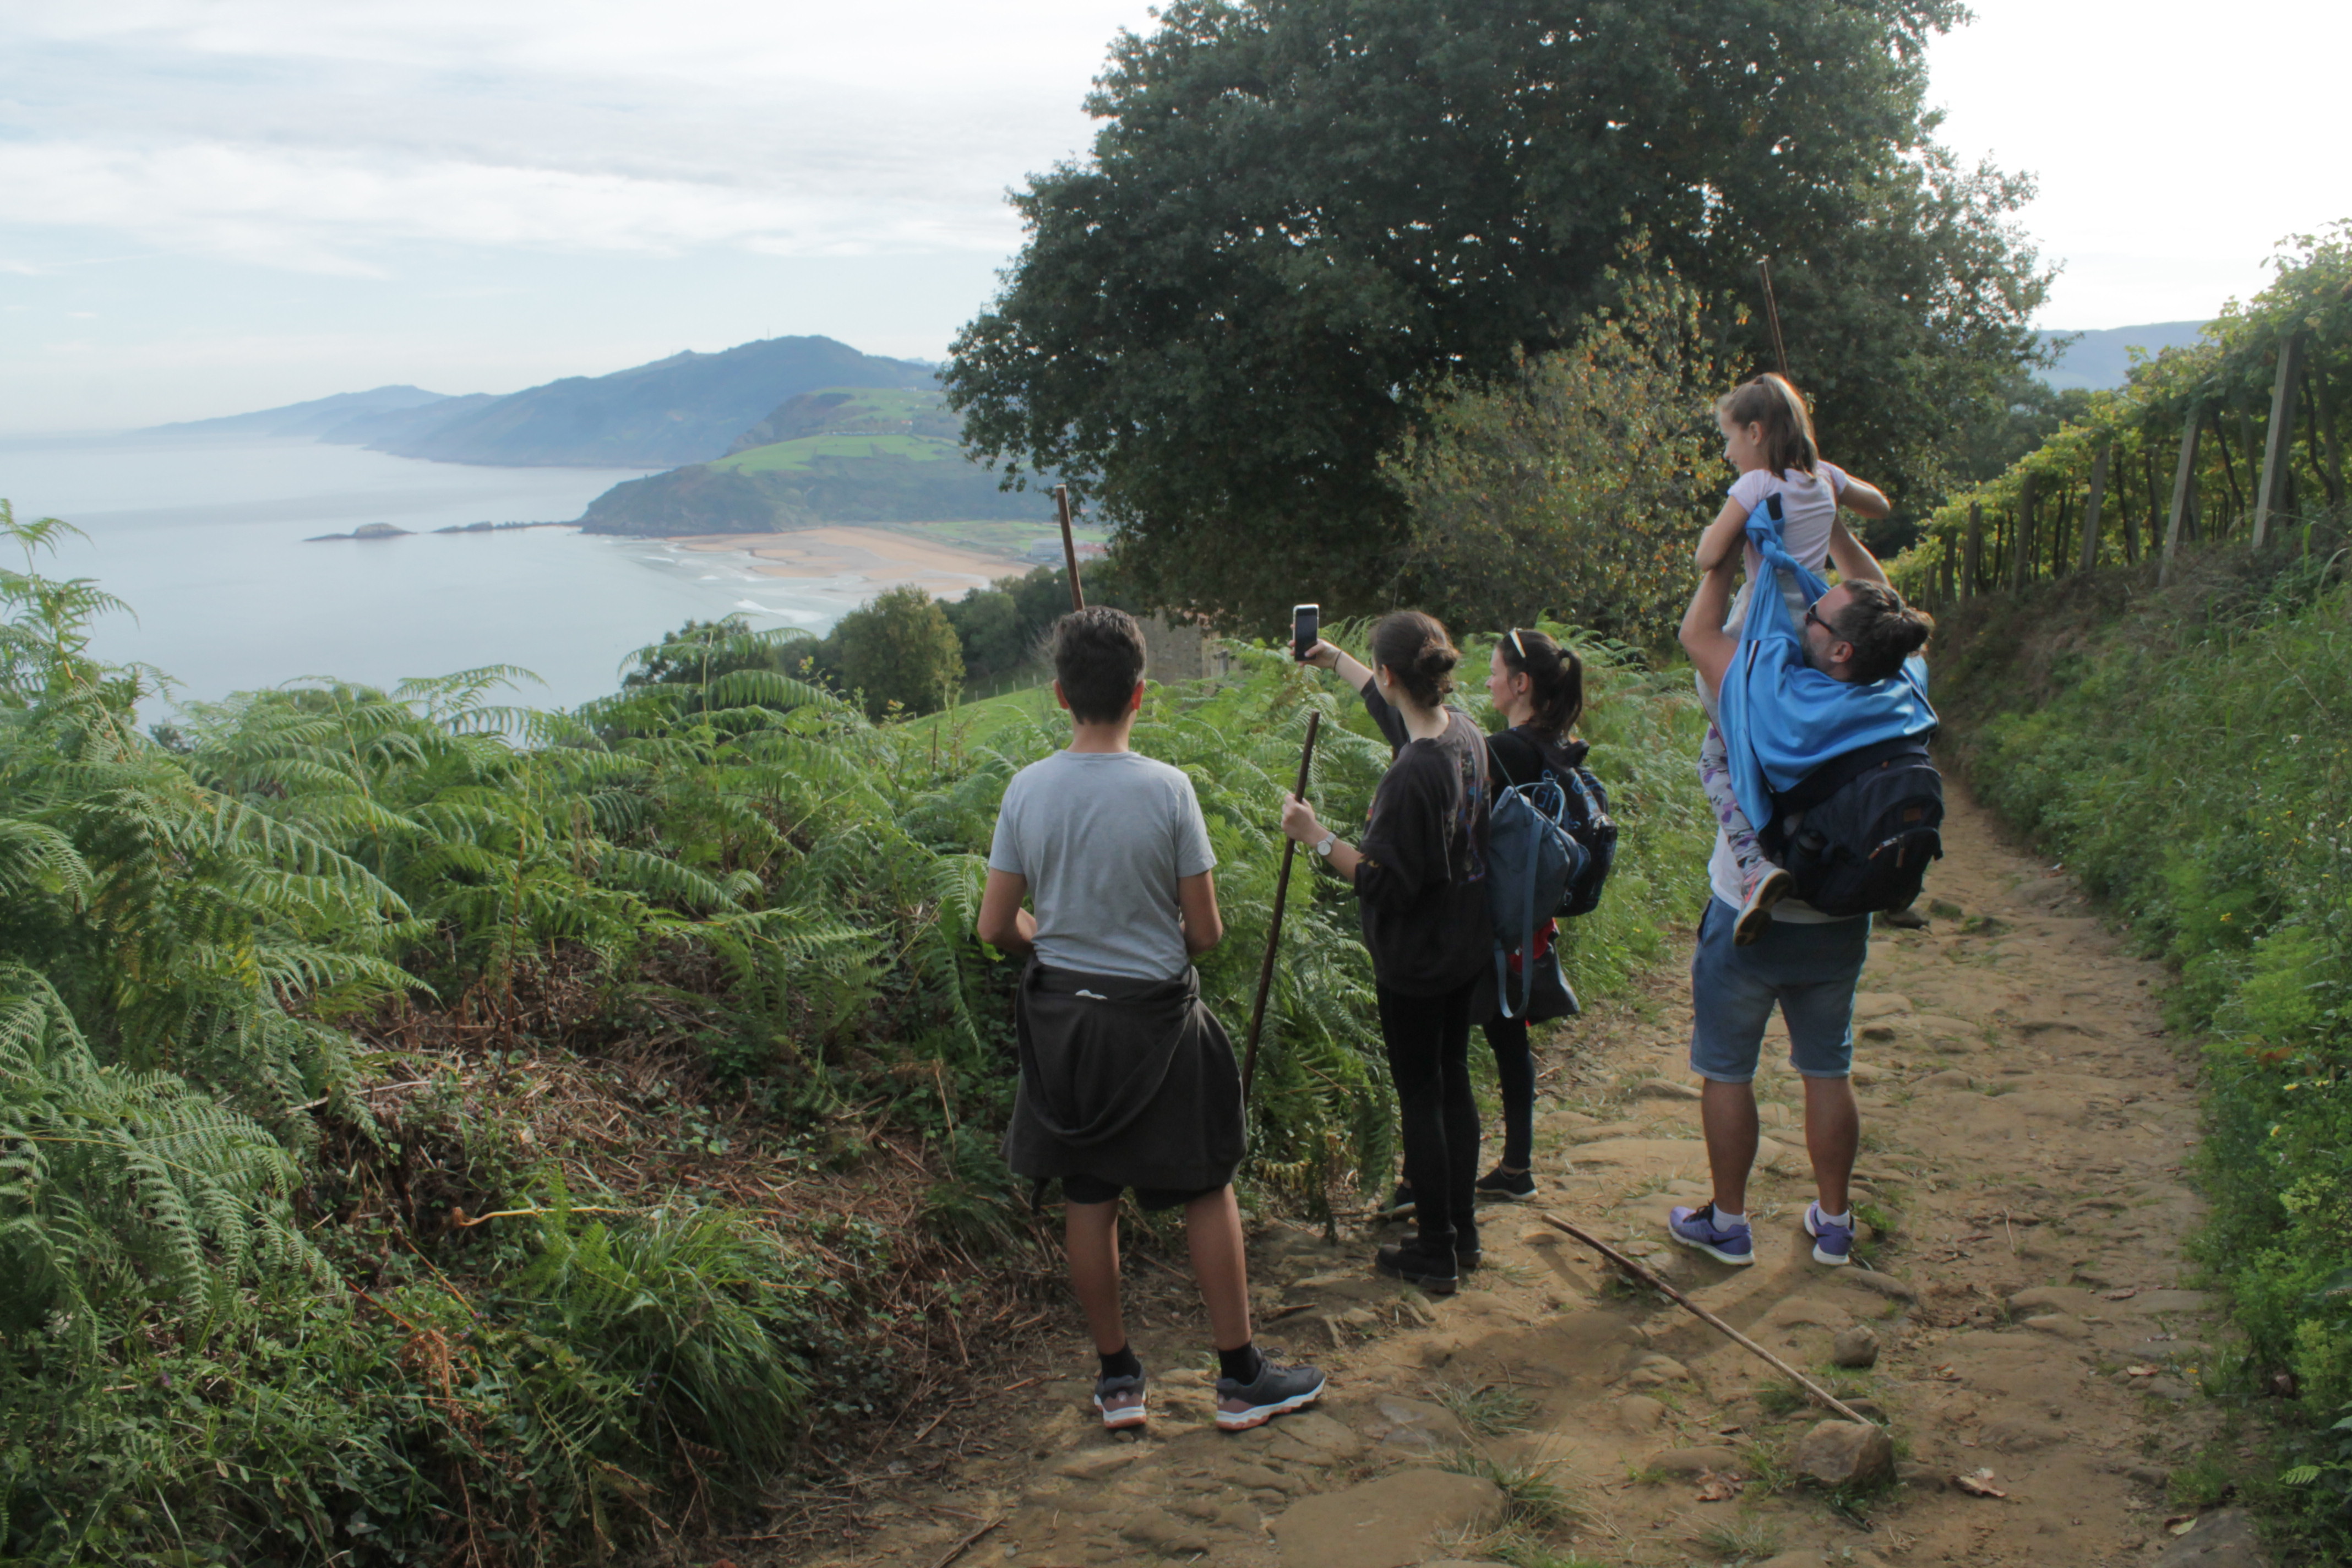 Hiking the Way of Saint James and Winery Visit